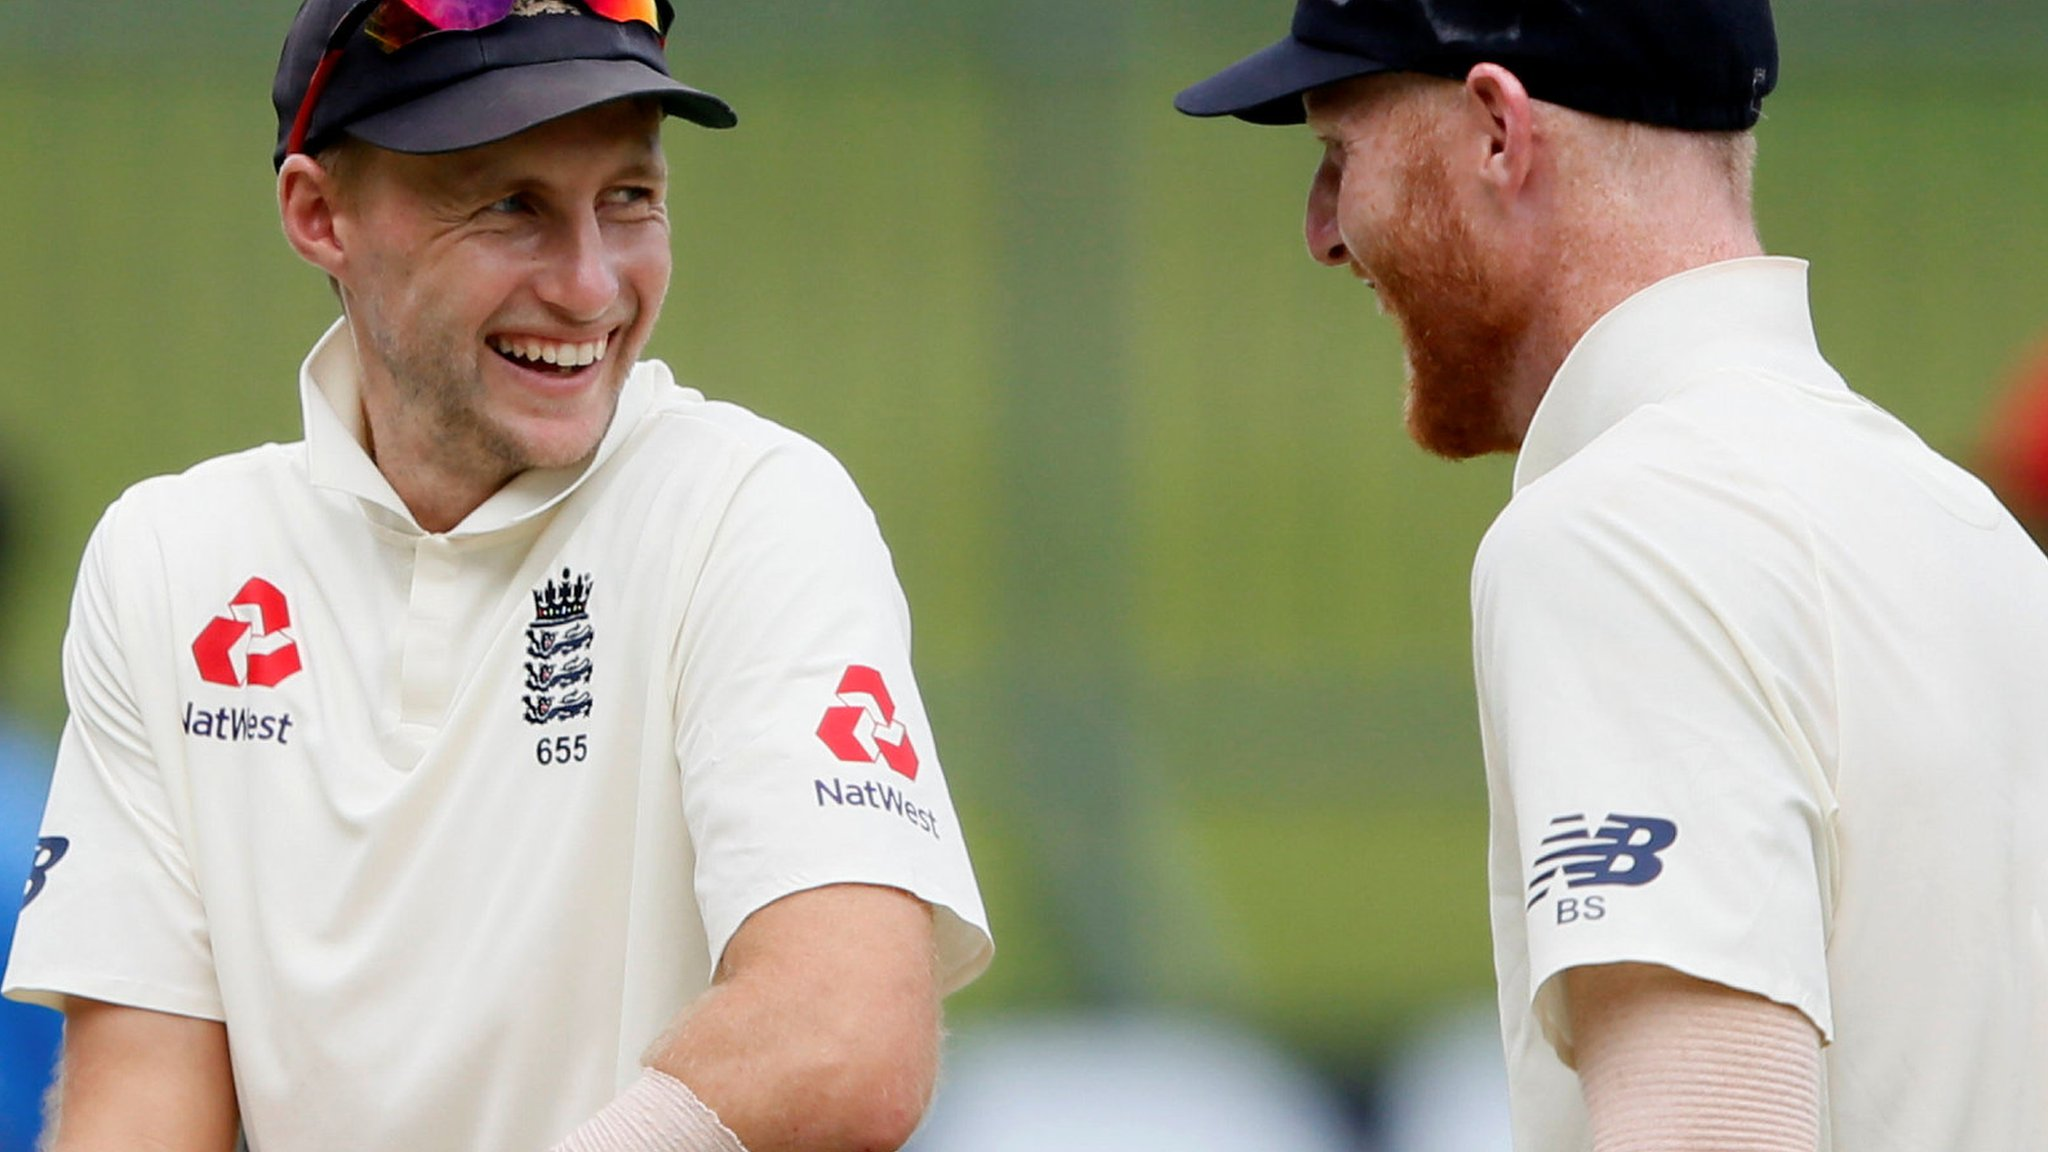 Sri Lanka v England: Joe Root wants team to 'set the trend' in Tests